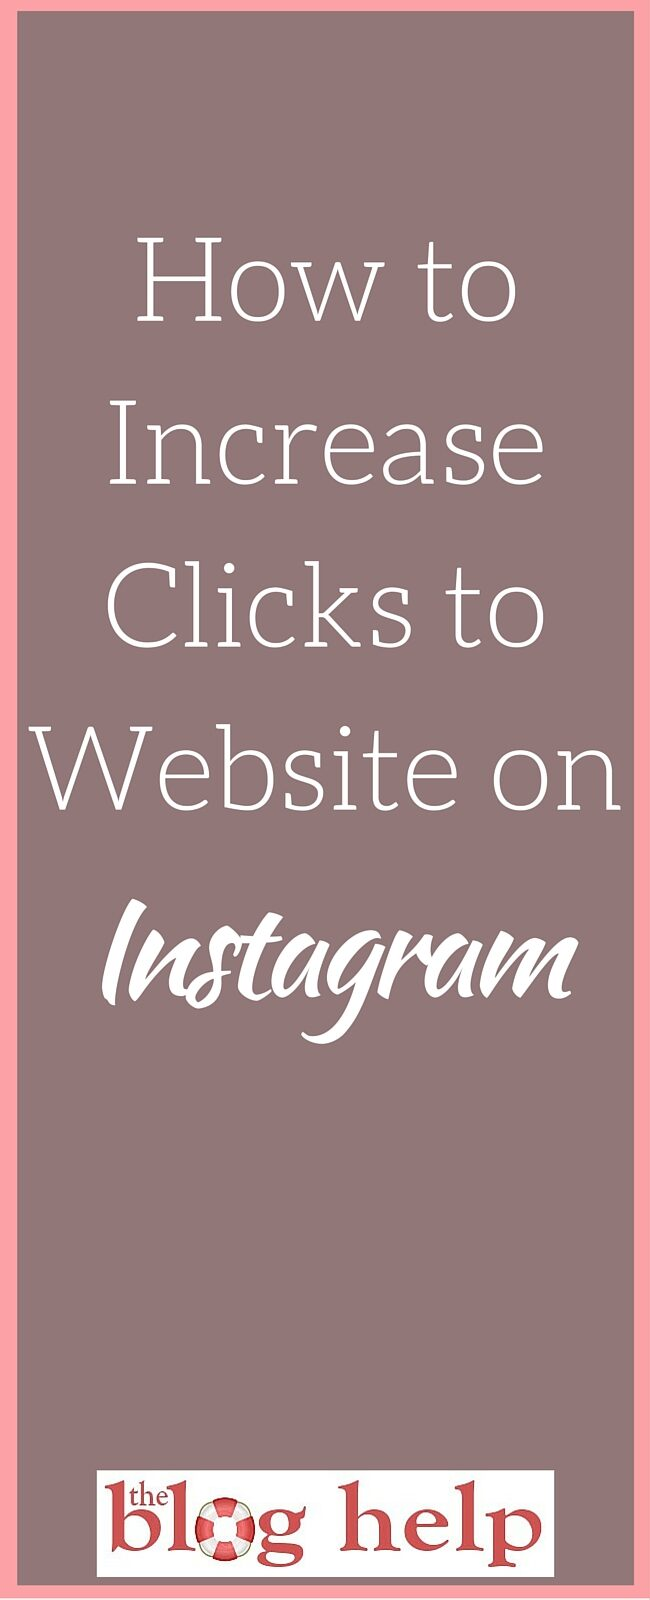 how-to-increase-clickthroughs-1-1470853